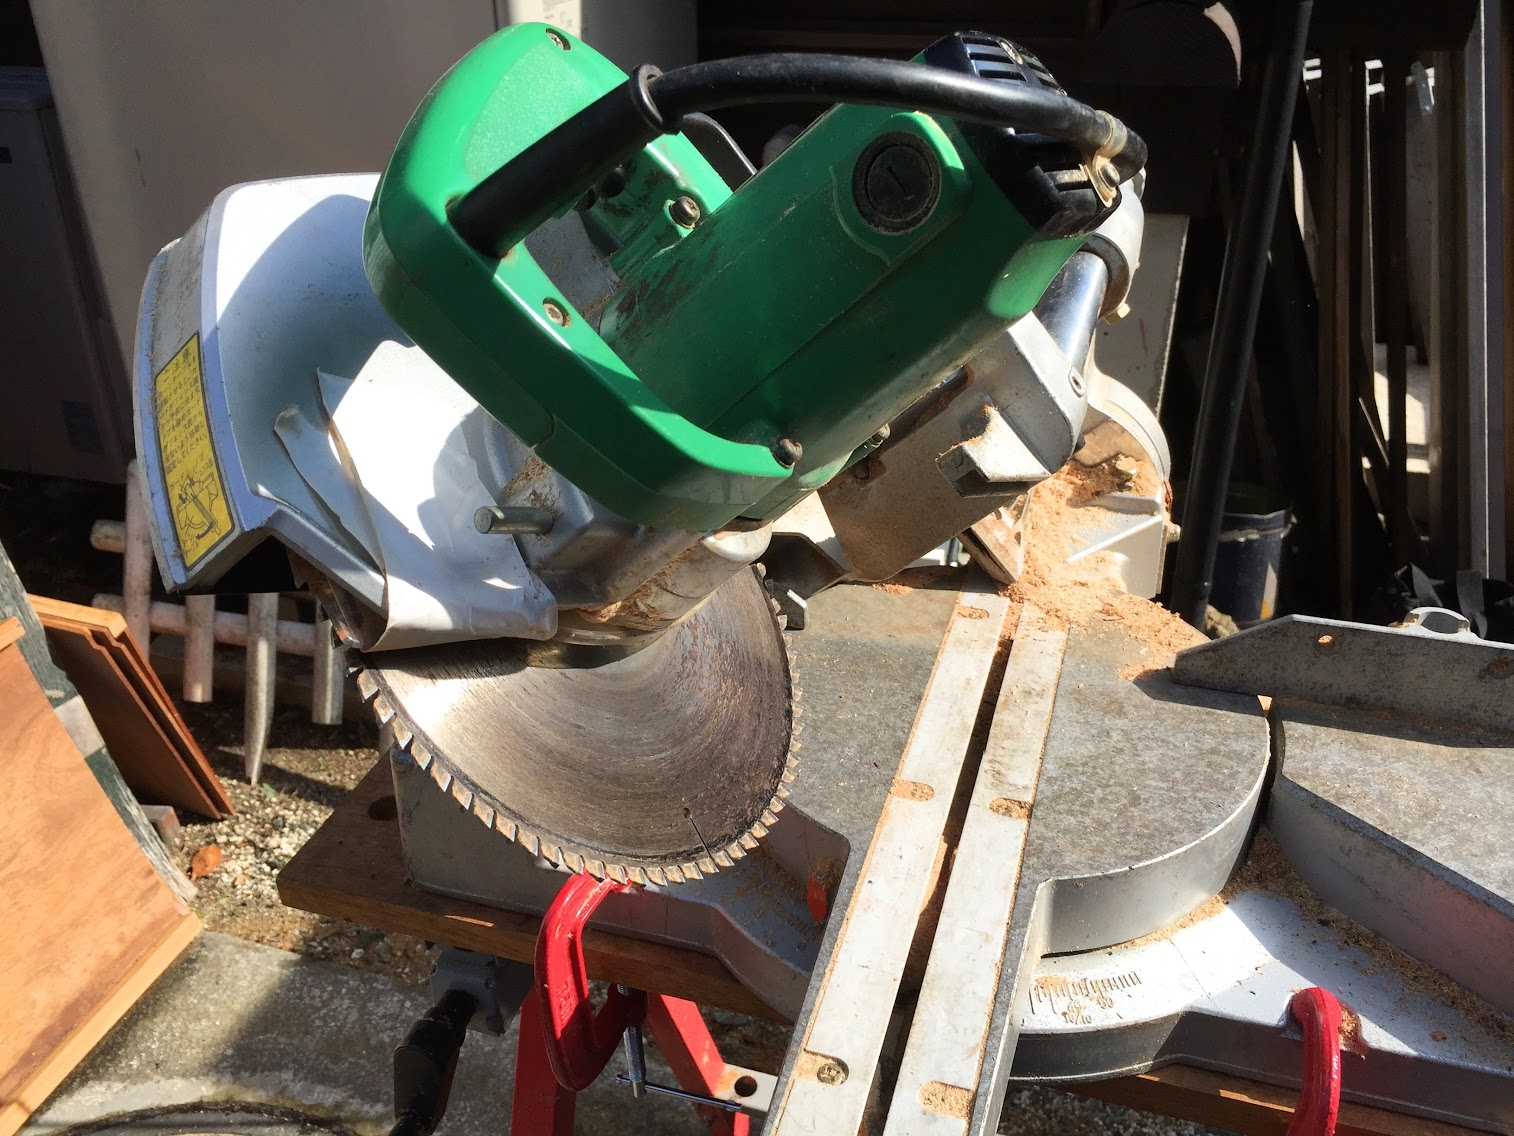 HITACHI C 8FB Sliding Compound Miter Saw